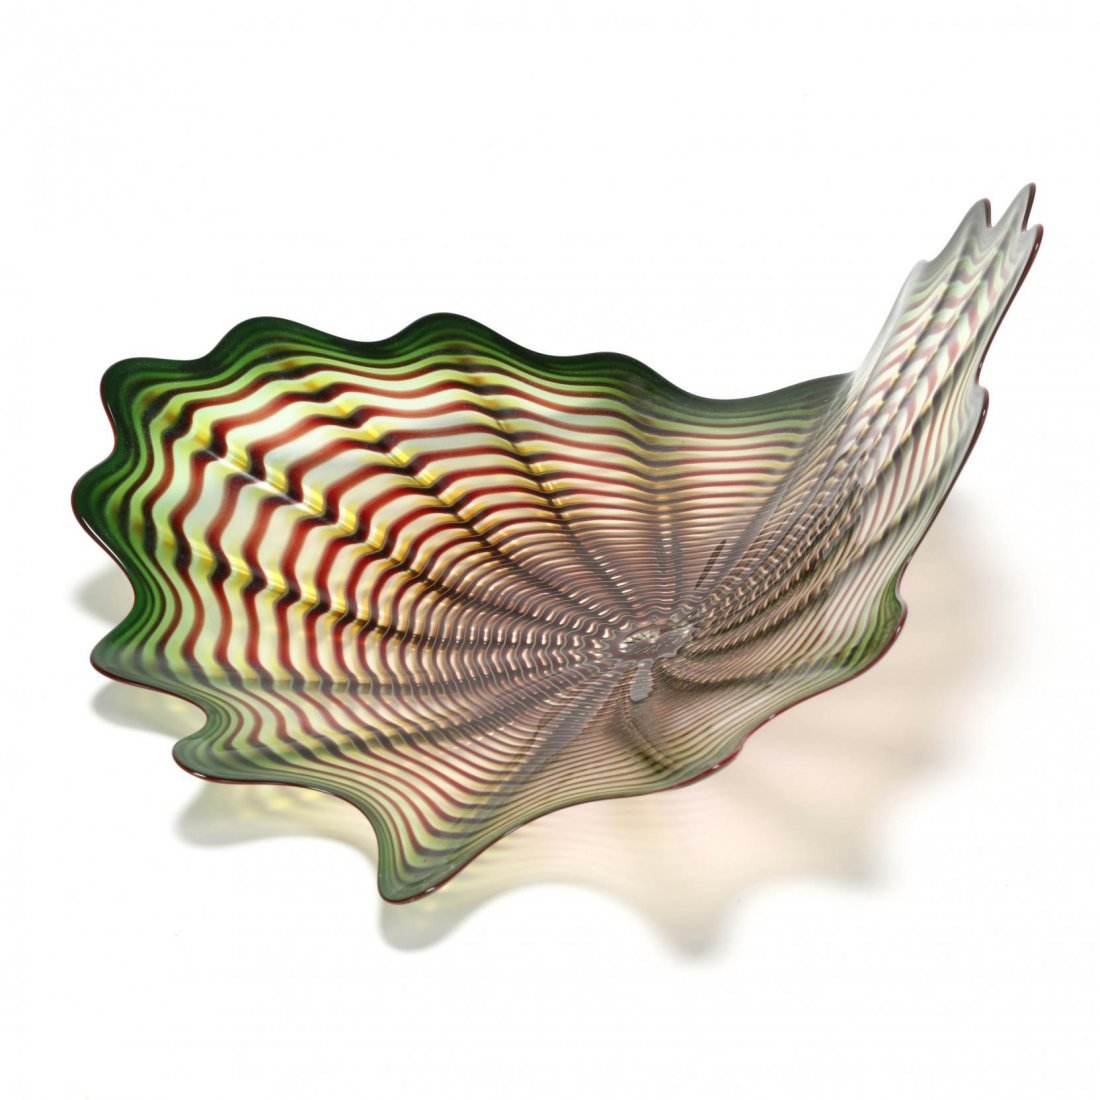 Dale Chihuly, Persian Glass Sculpture - 4